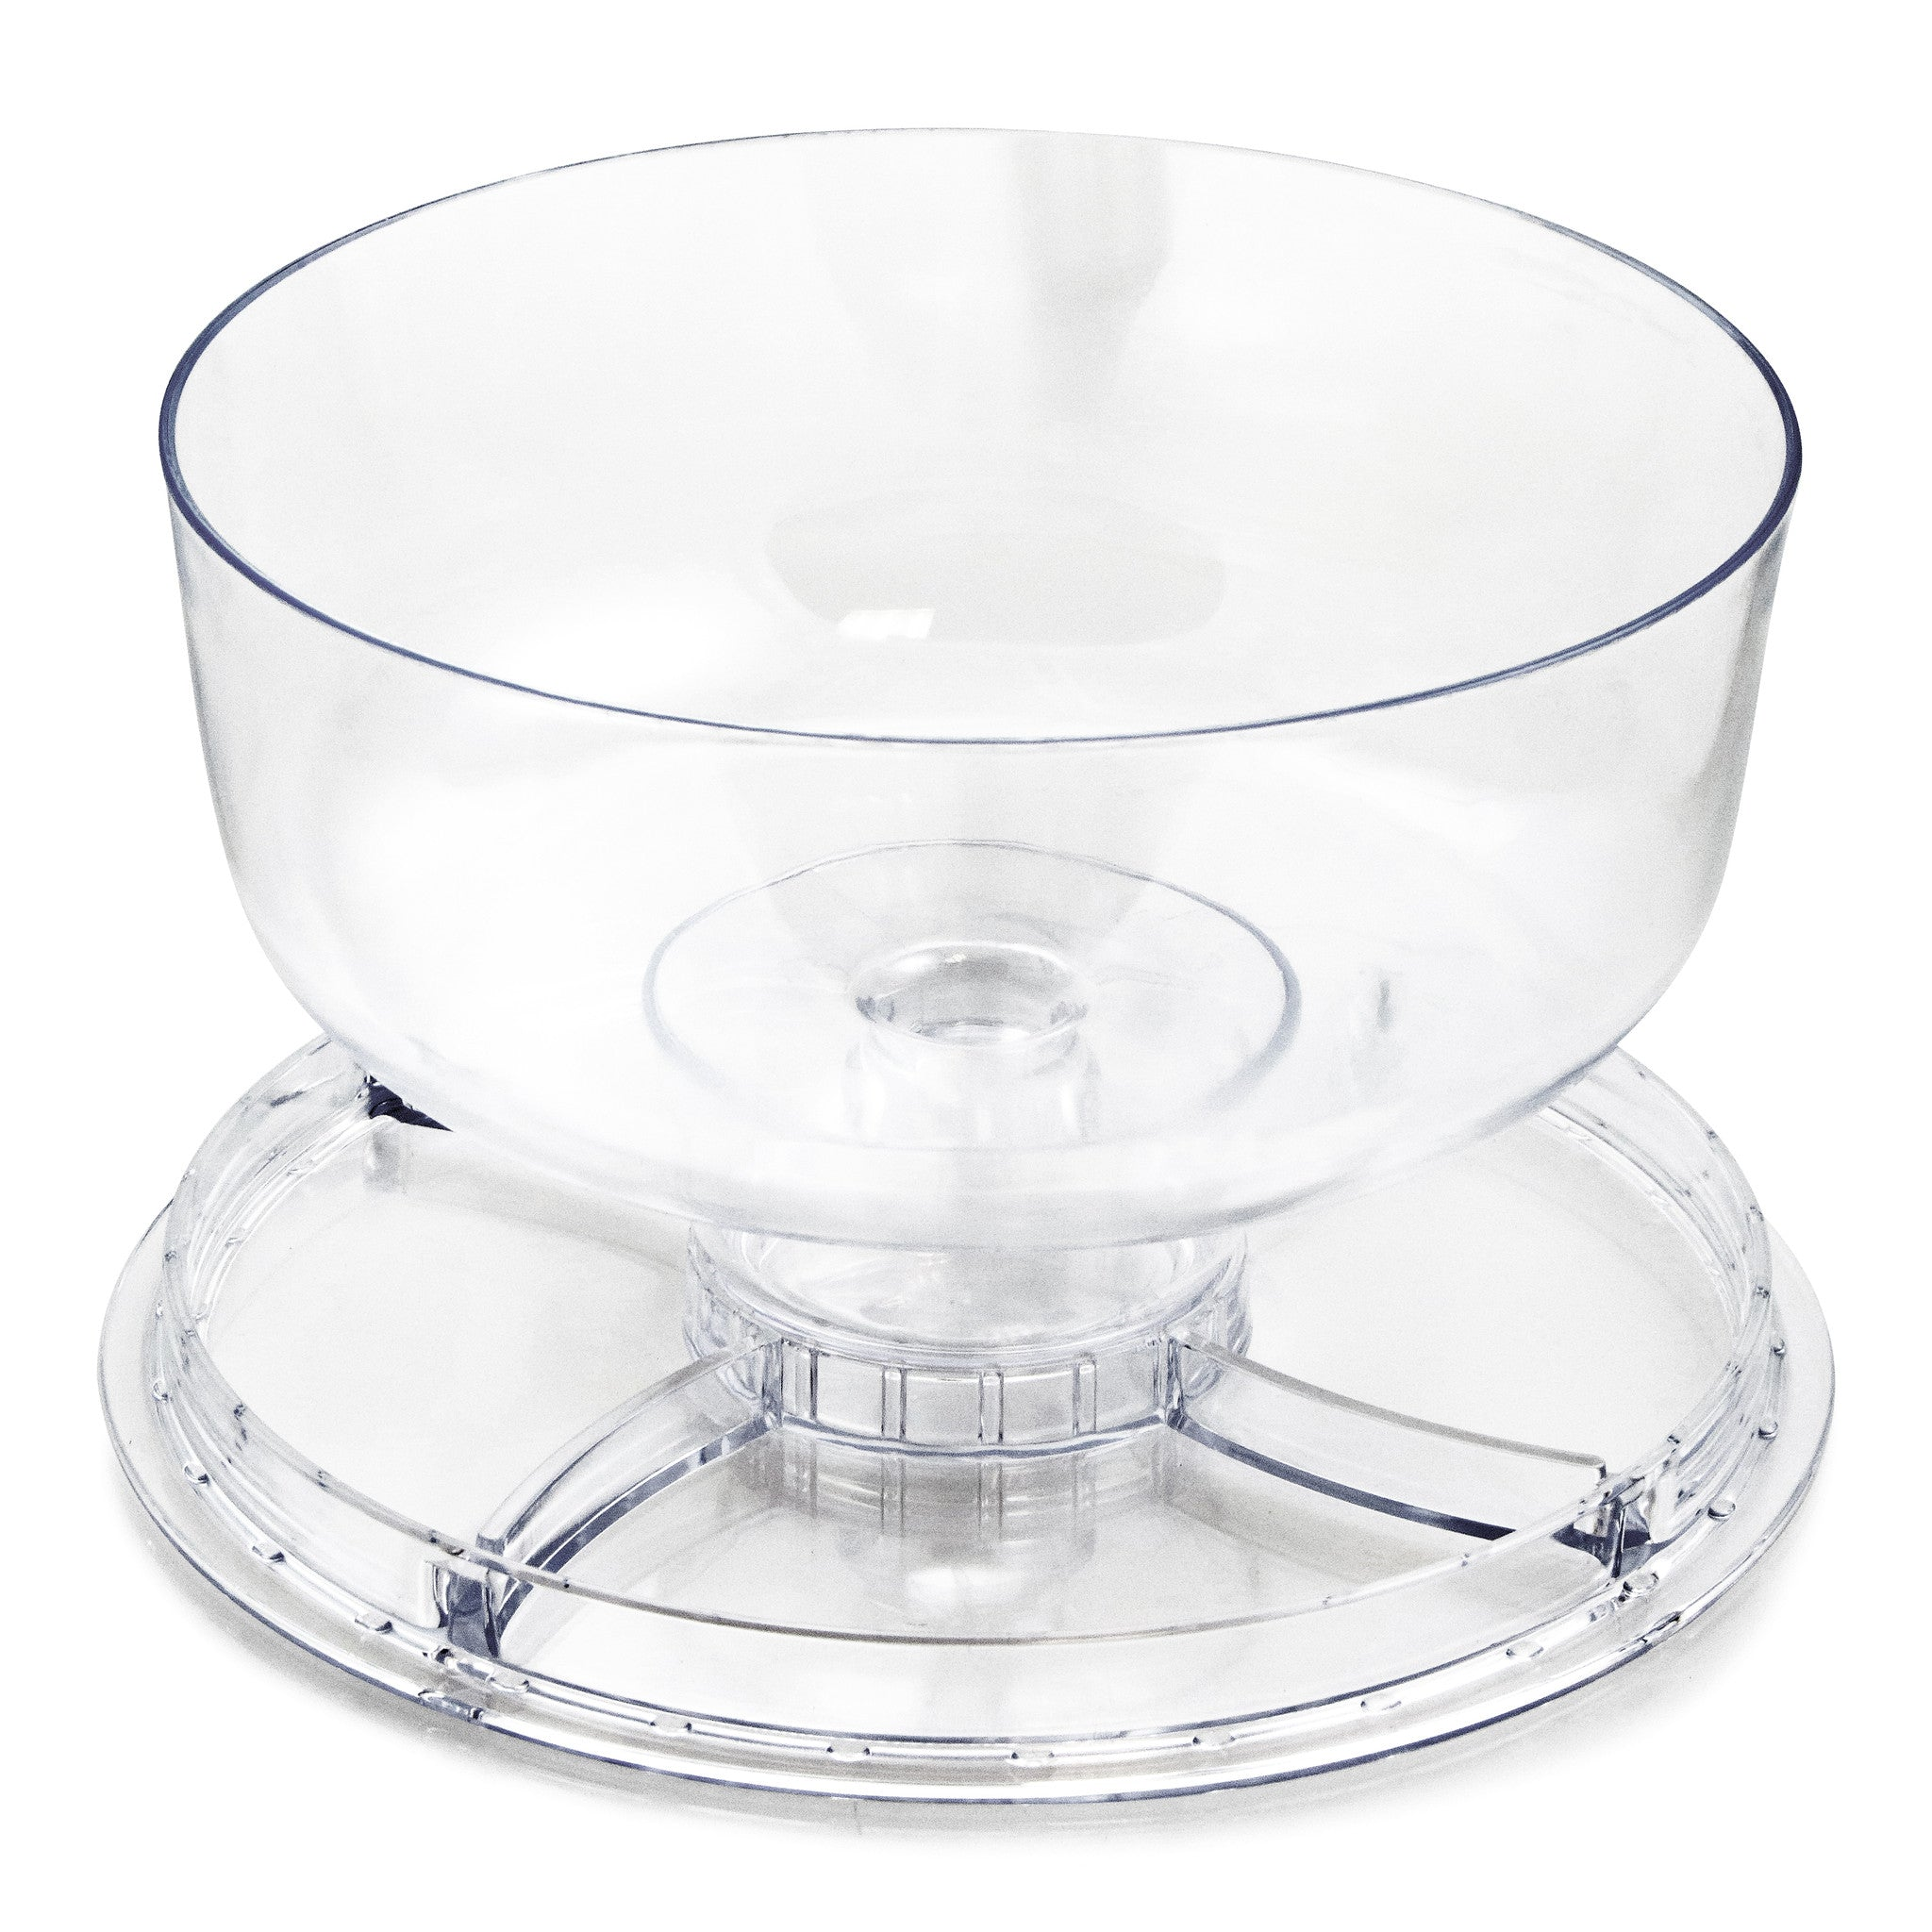 ... True Craftware Multifunctional (6-in-1 different possibilities) Clear Acrylic Cake Stand ...  sc 1 st  True Craftware & True Craftware Multifunctional (6-in-1 different possibilities ...